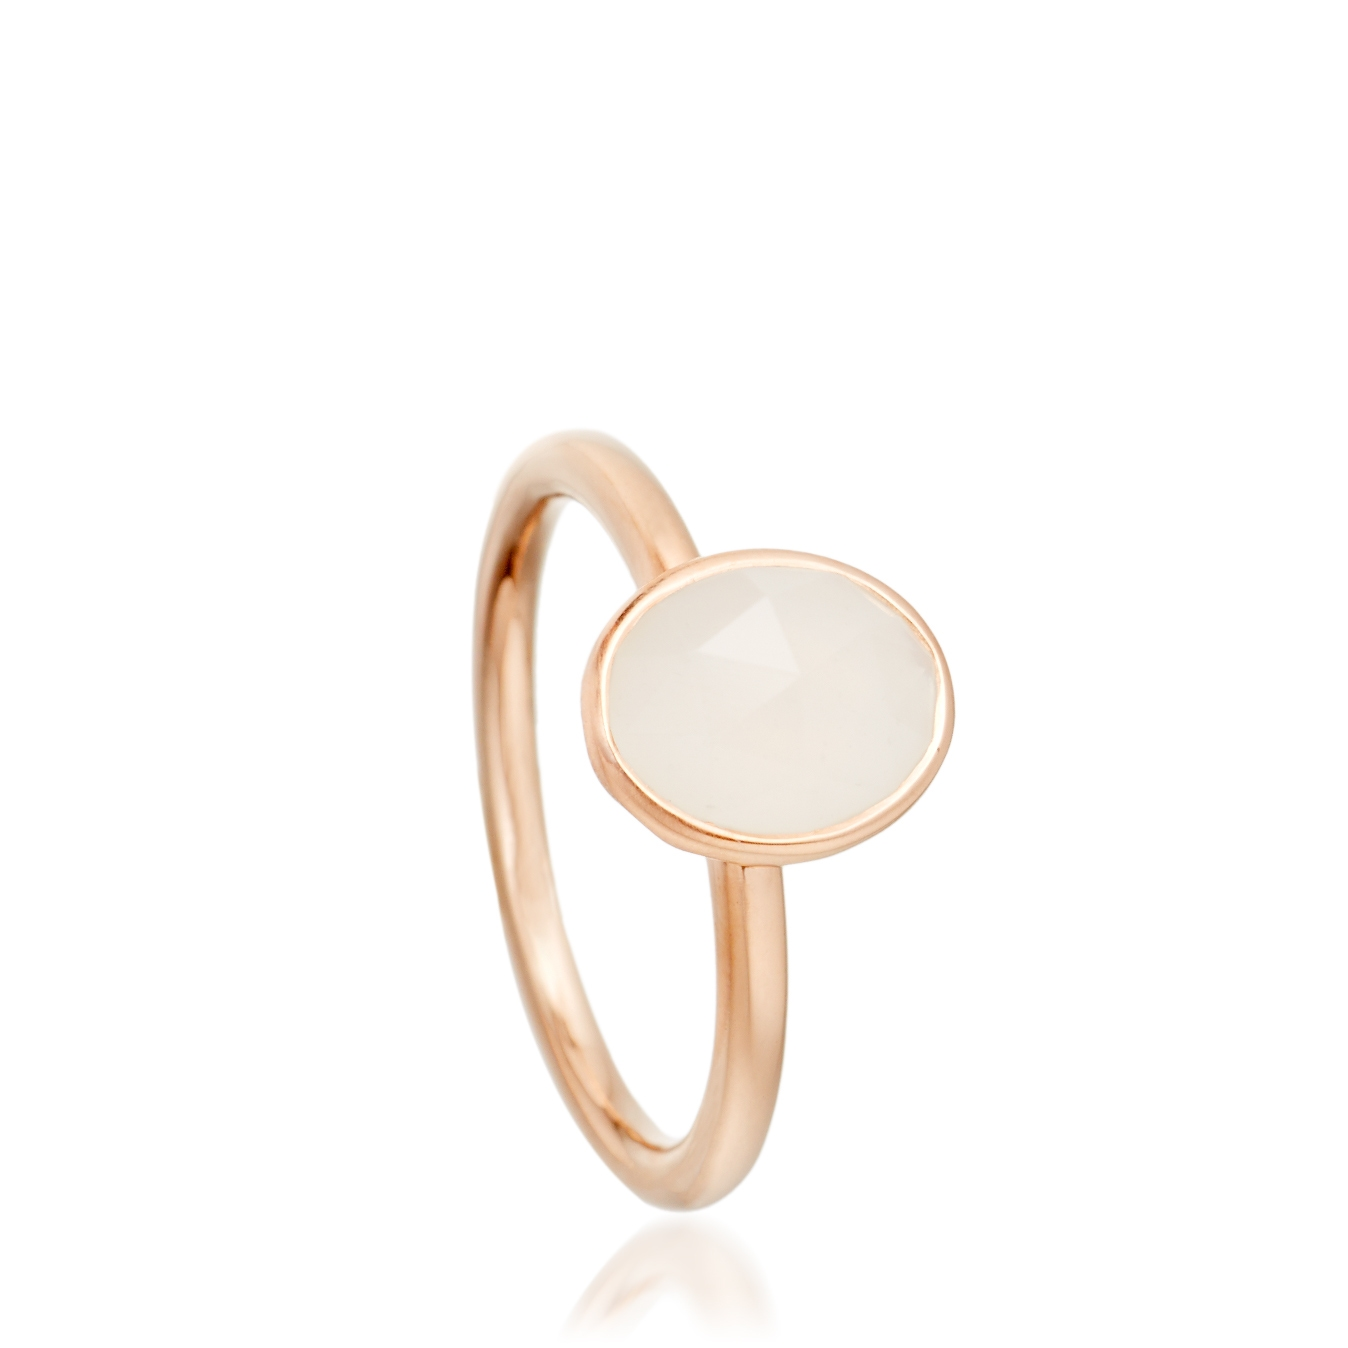 Moonstone Oval Stilla Ring